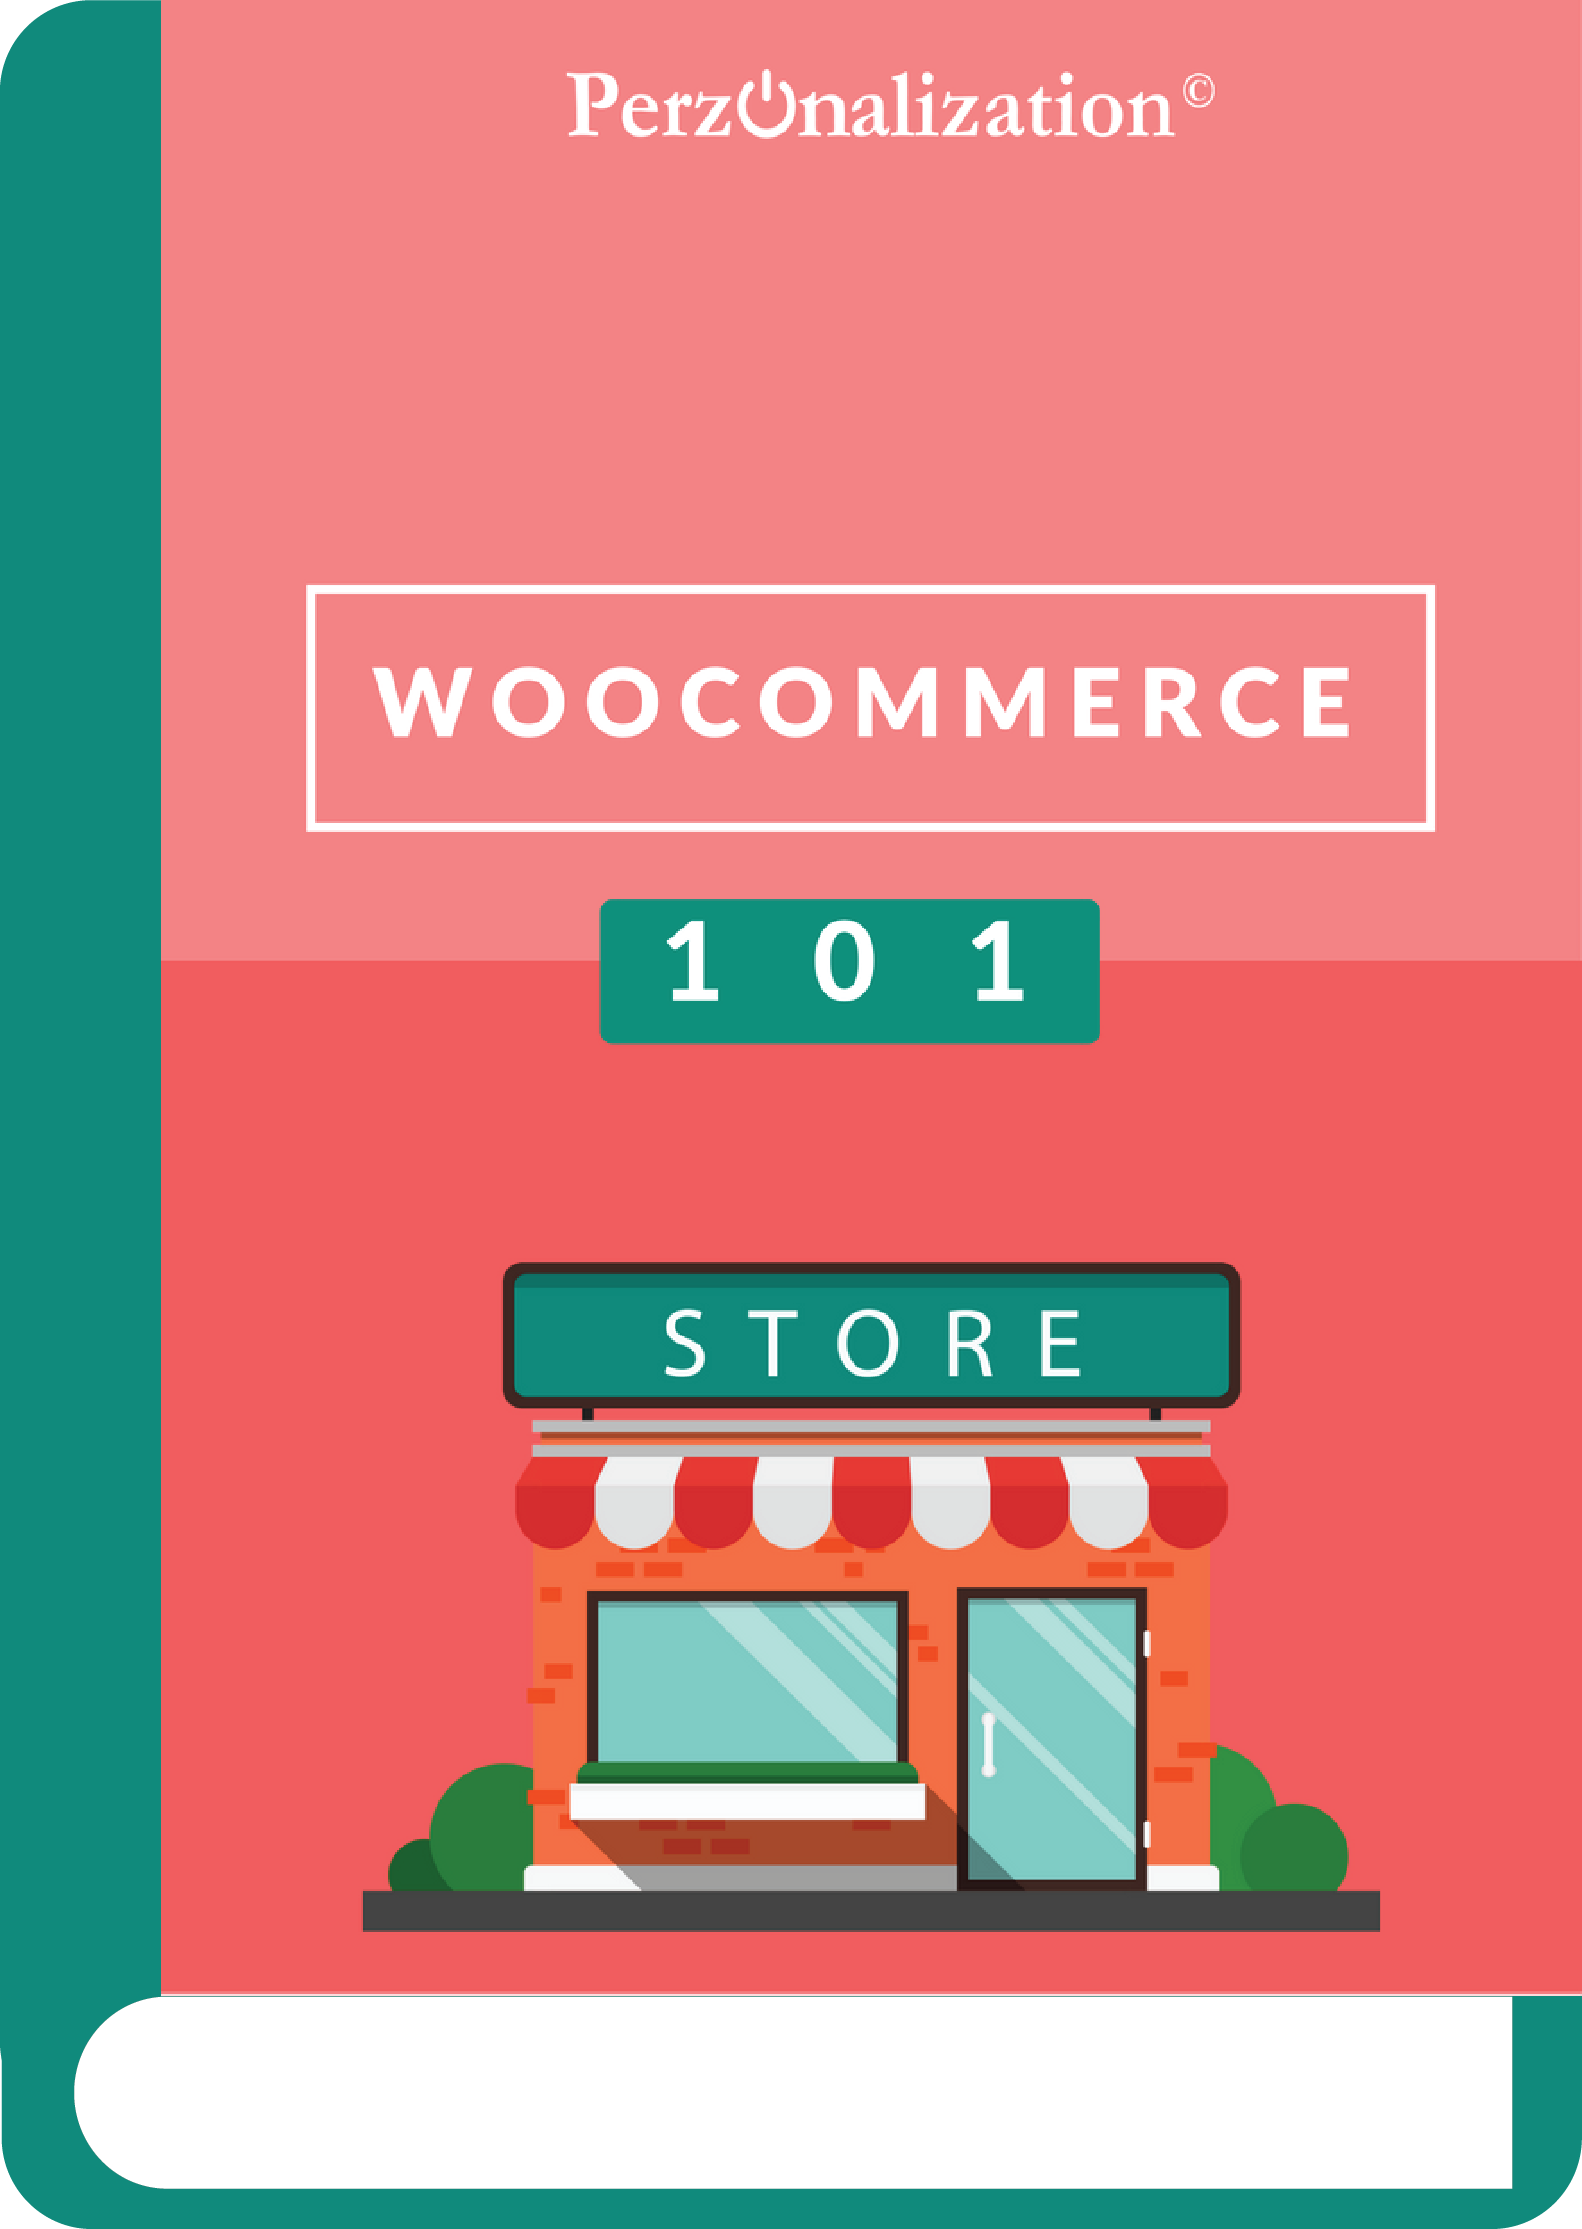 If you already have a blog hosted on WordPress and would like to start an eCommerce business, the most logical route is to install the WooCommerce extension to add eCommerce website functionality on top of your blog. Find out in this eBook how a WordPress blogger can benefit from WooCommerce extension.